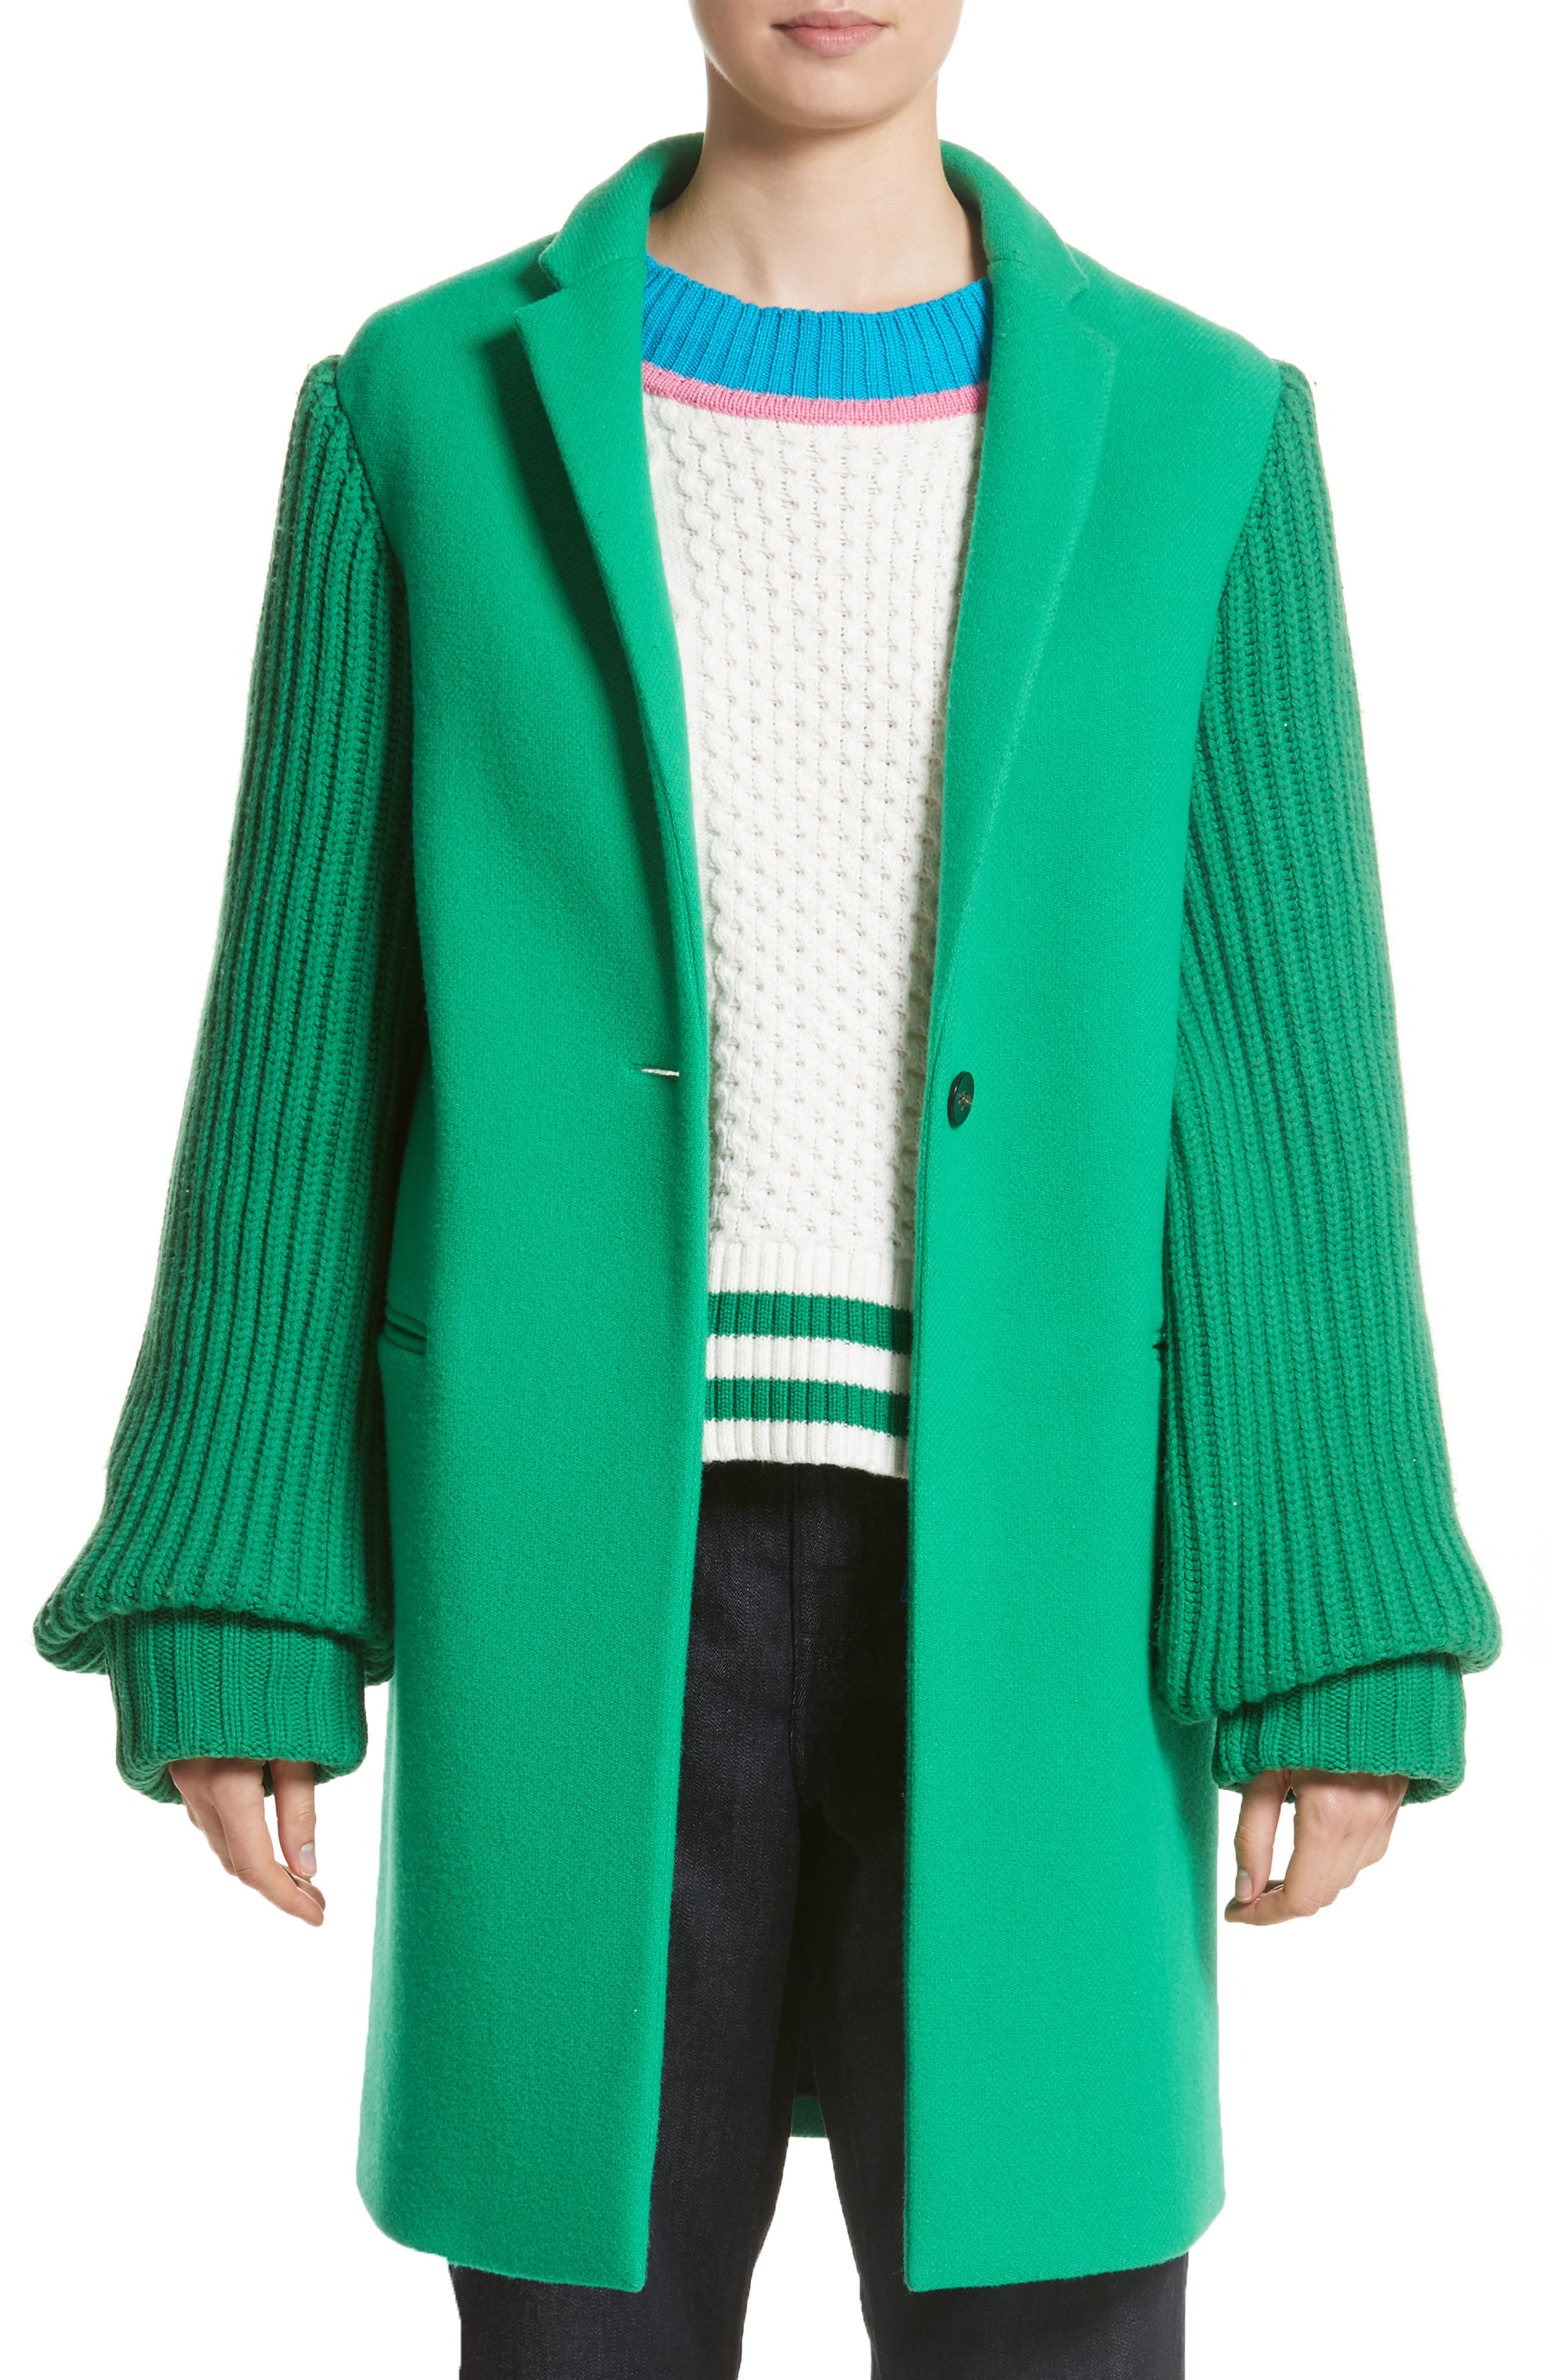 Ask Me Later Embroidered Knit Sleeve Coat,                         Main,                         color, 300